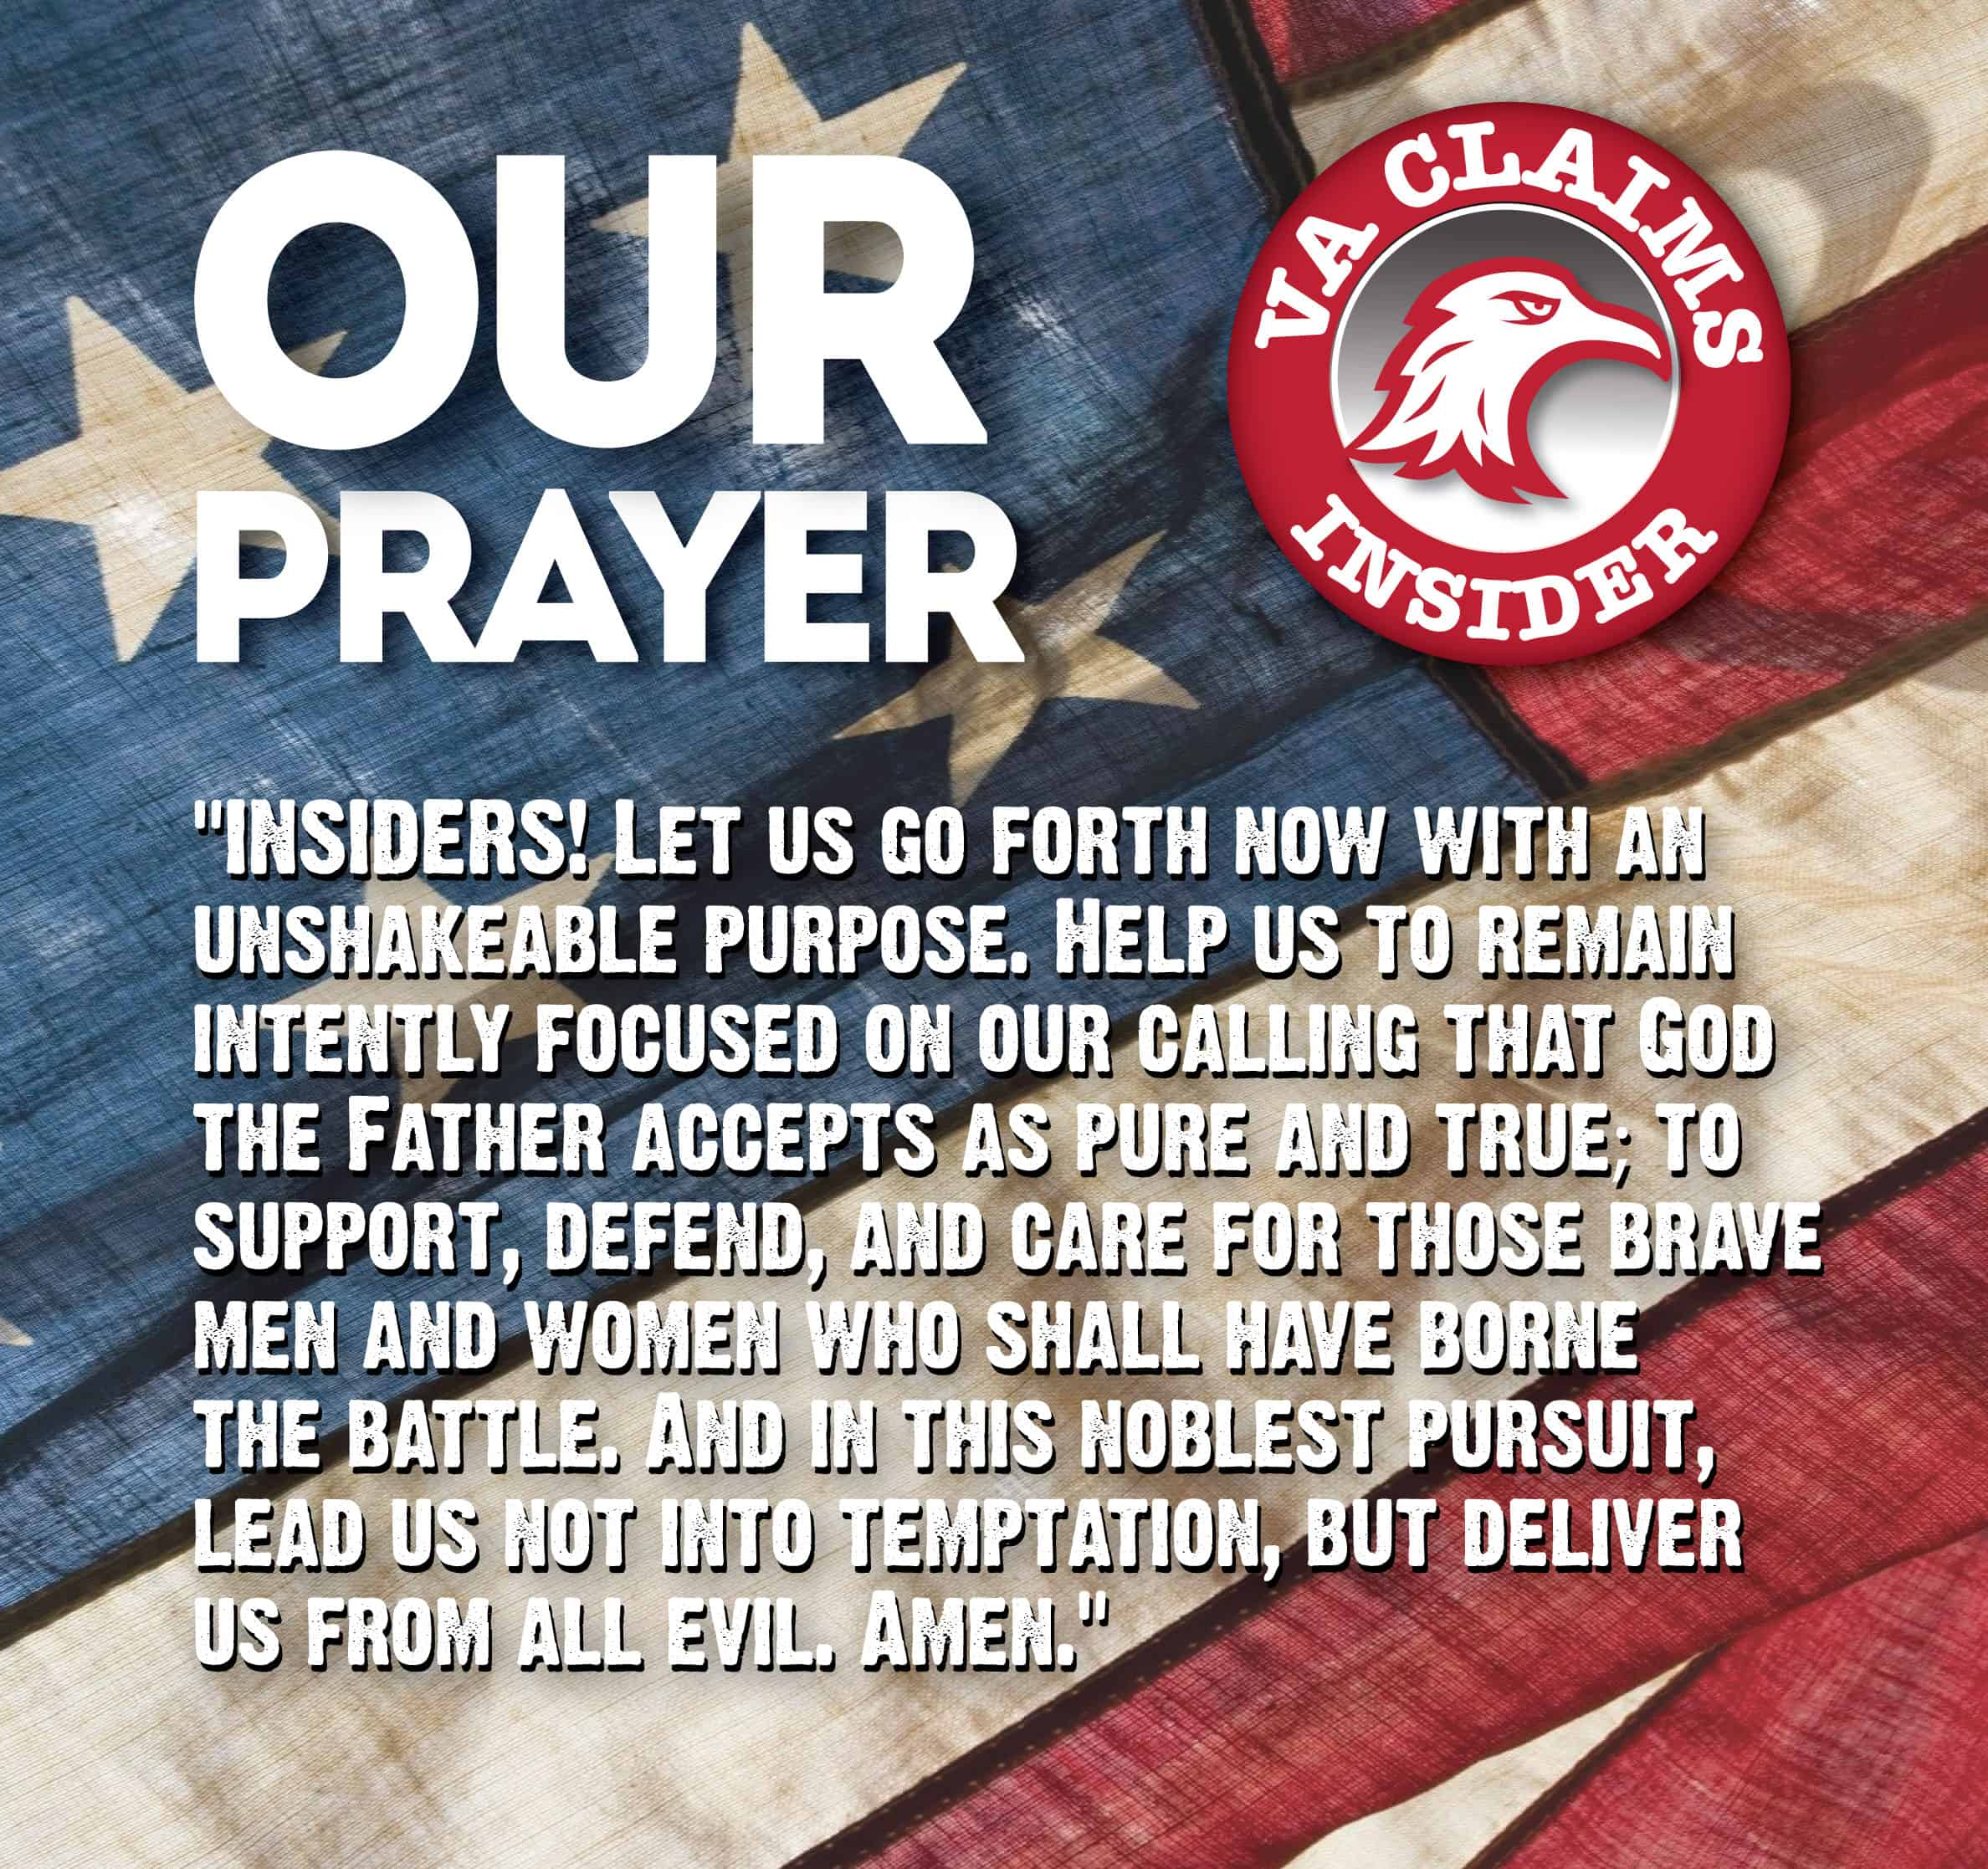 About The Insiders Prayer